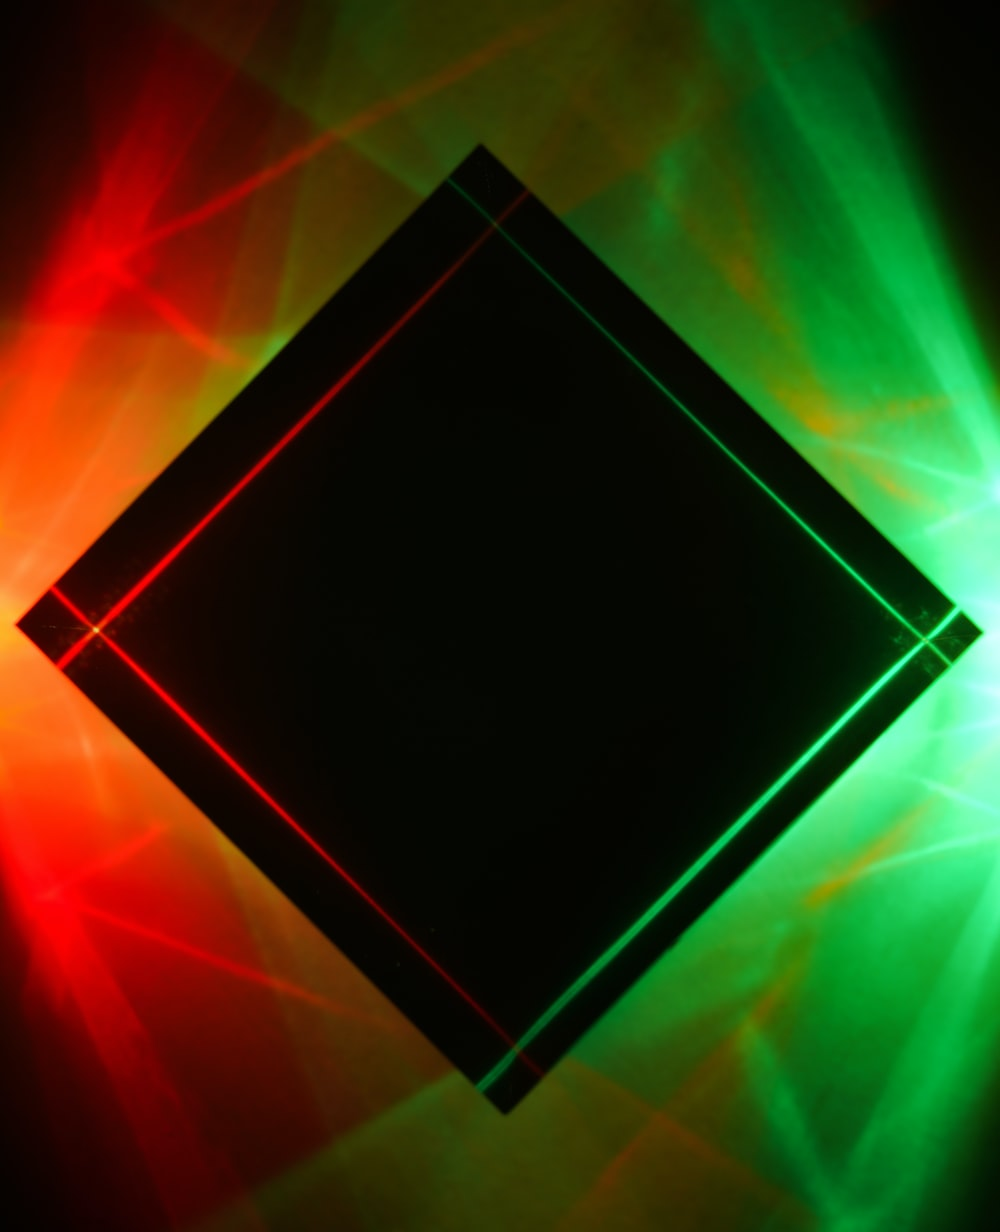 red green and black square illustration